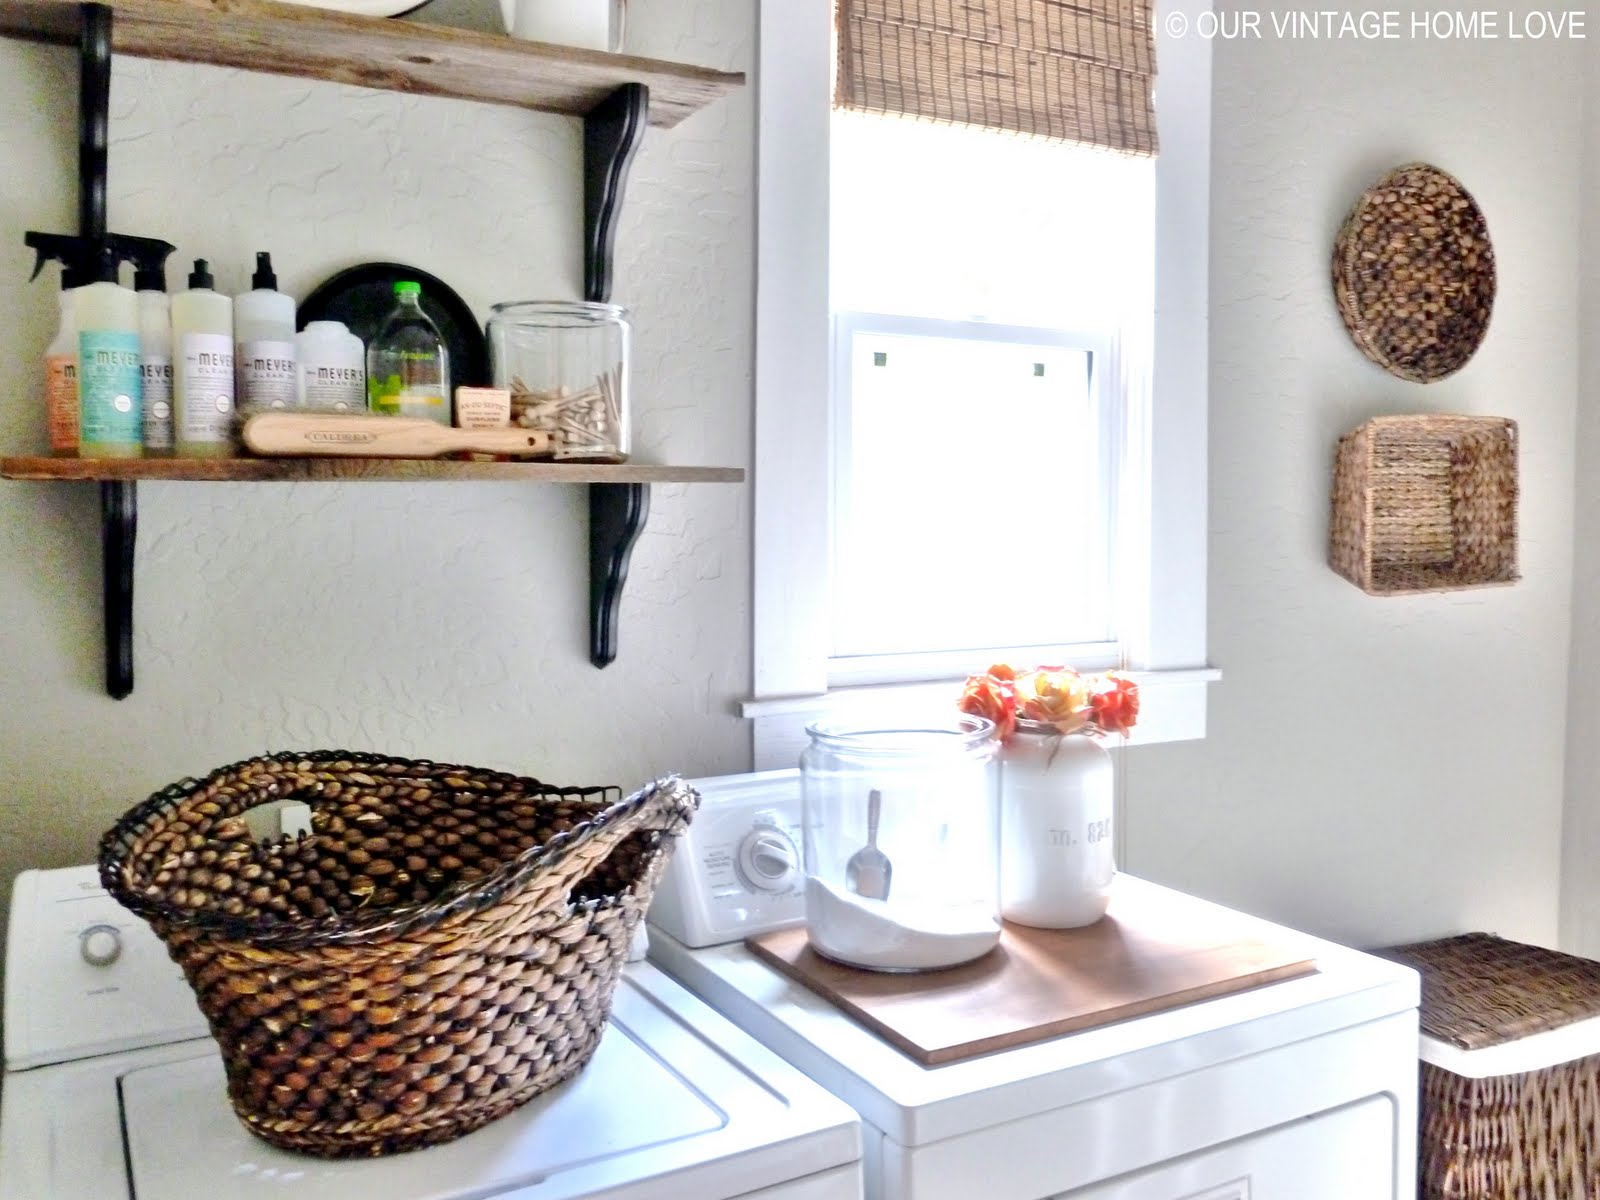 Our vintage home love laundry room ideas and a vintage - Decorating laundry room ideas ...